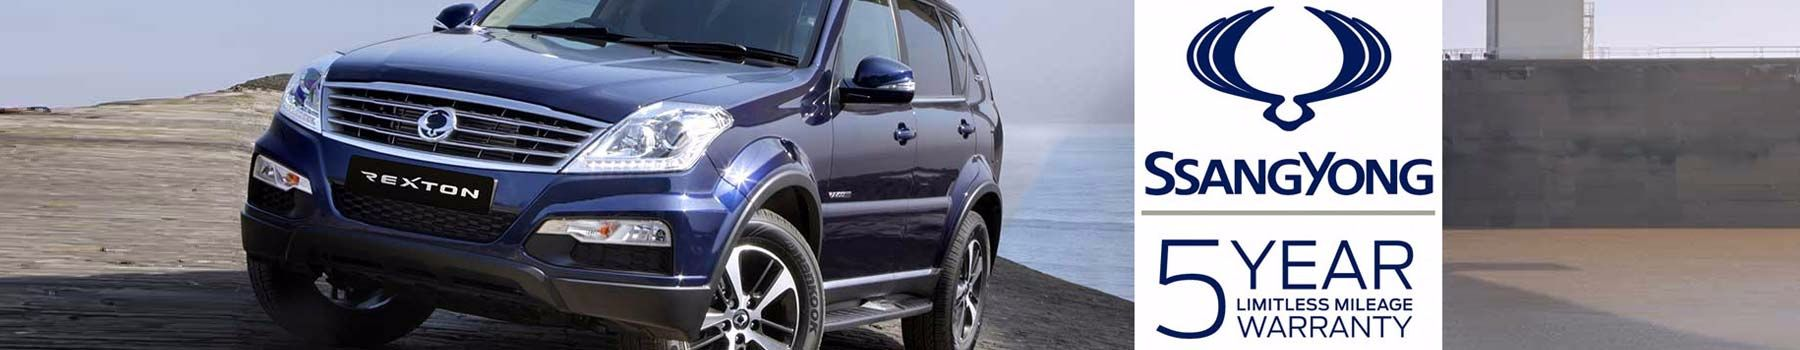 SsangYong Warranty at Leisure World Motors